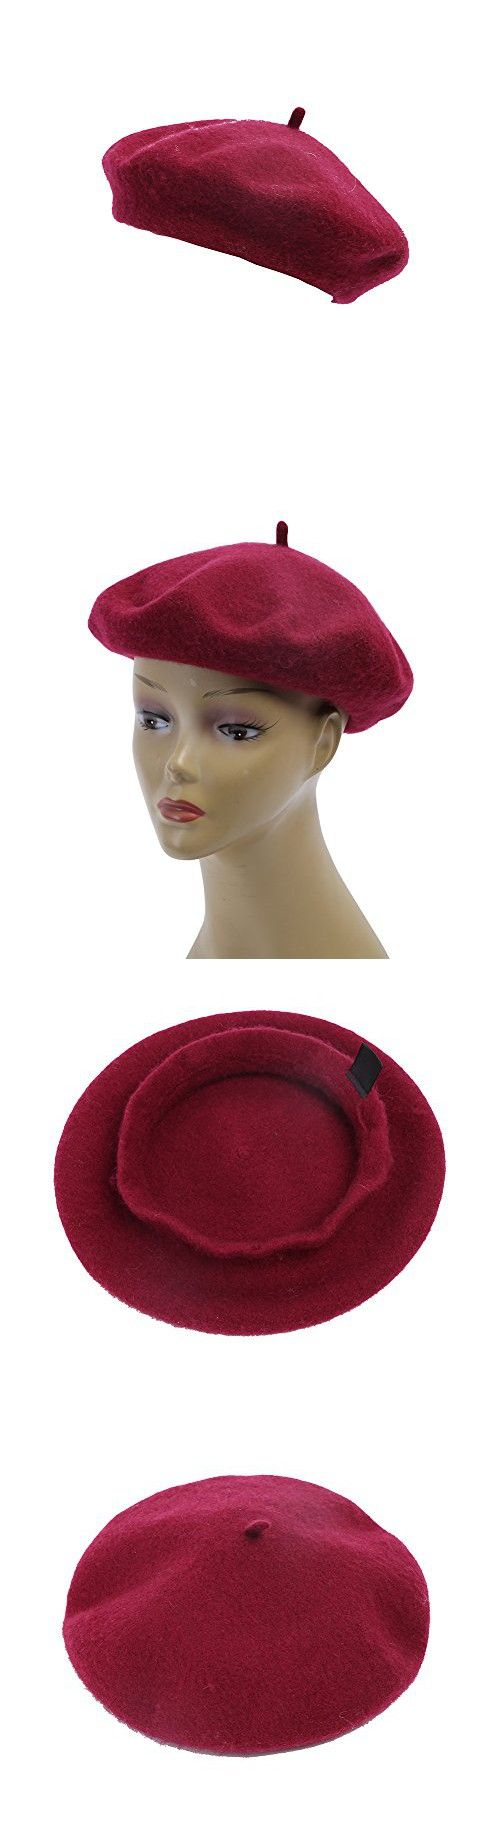 Women's 100% Wool Beret Hat Fashion Solid Color French Wine Red Berets